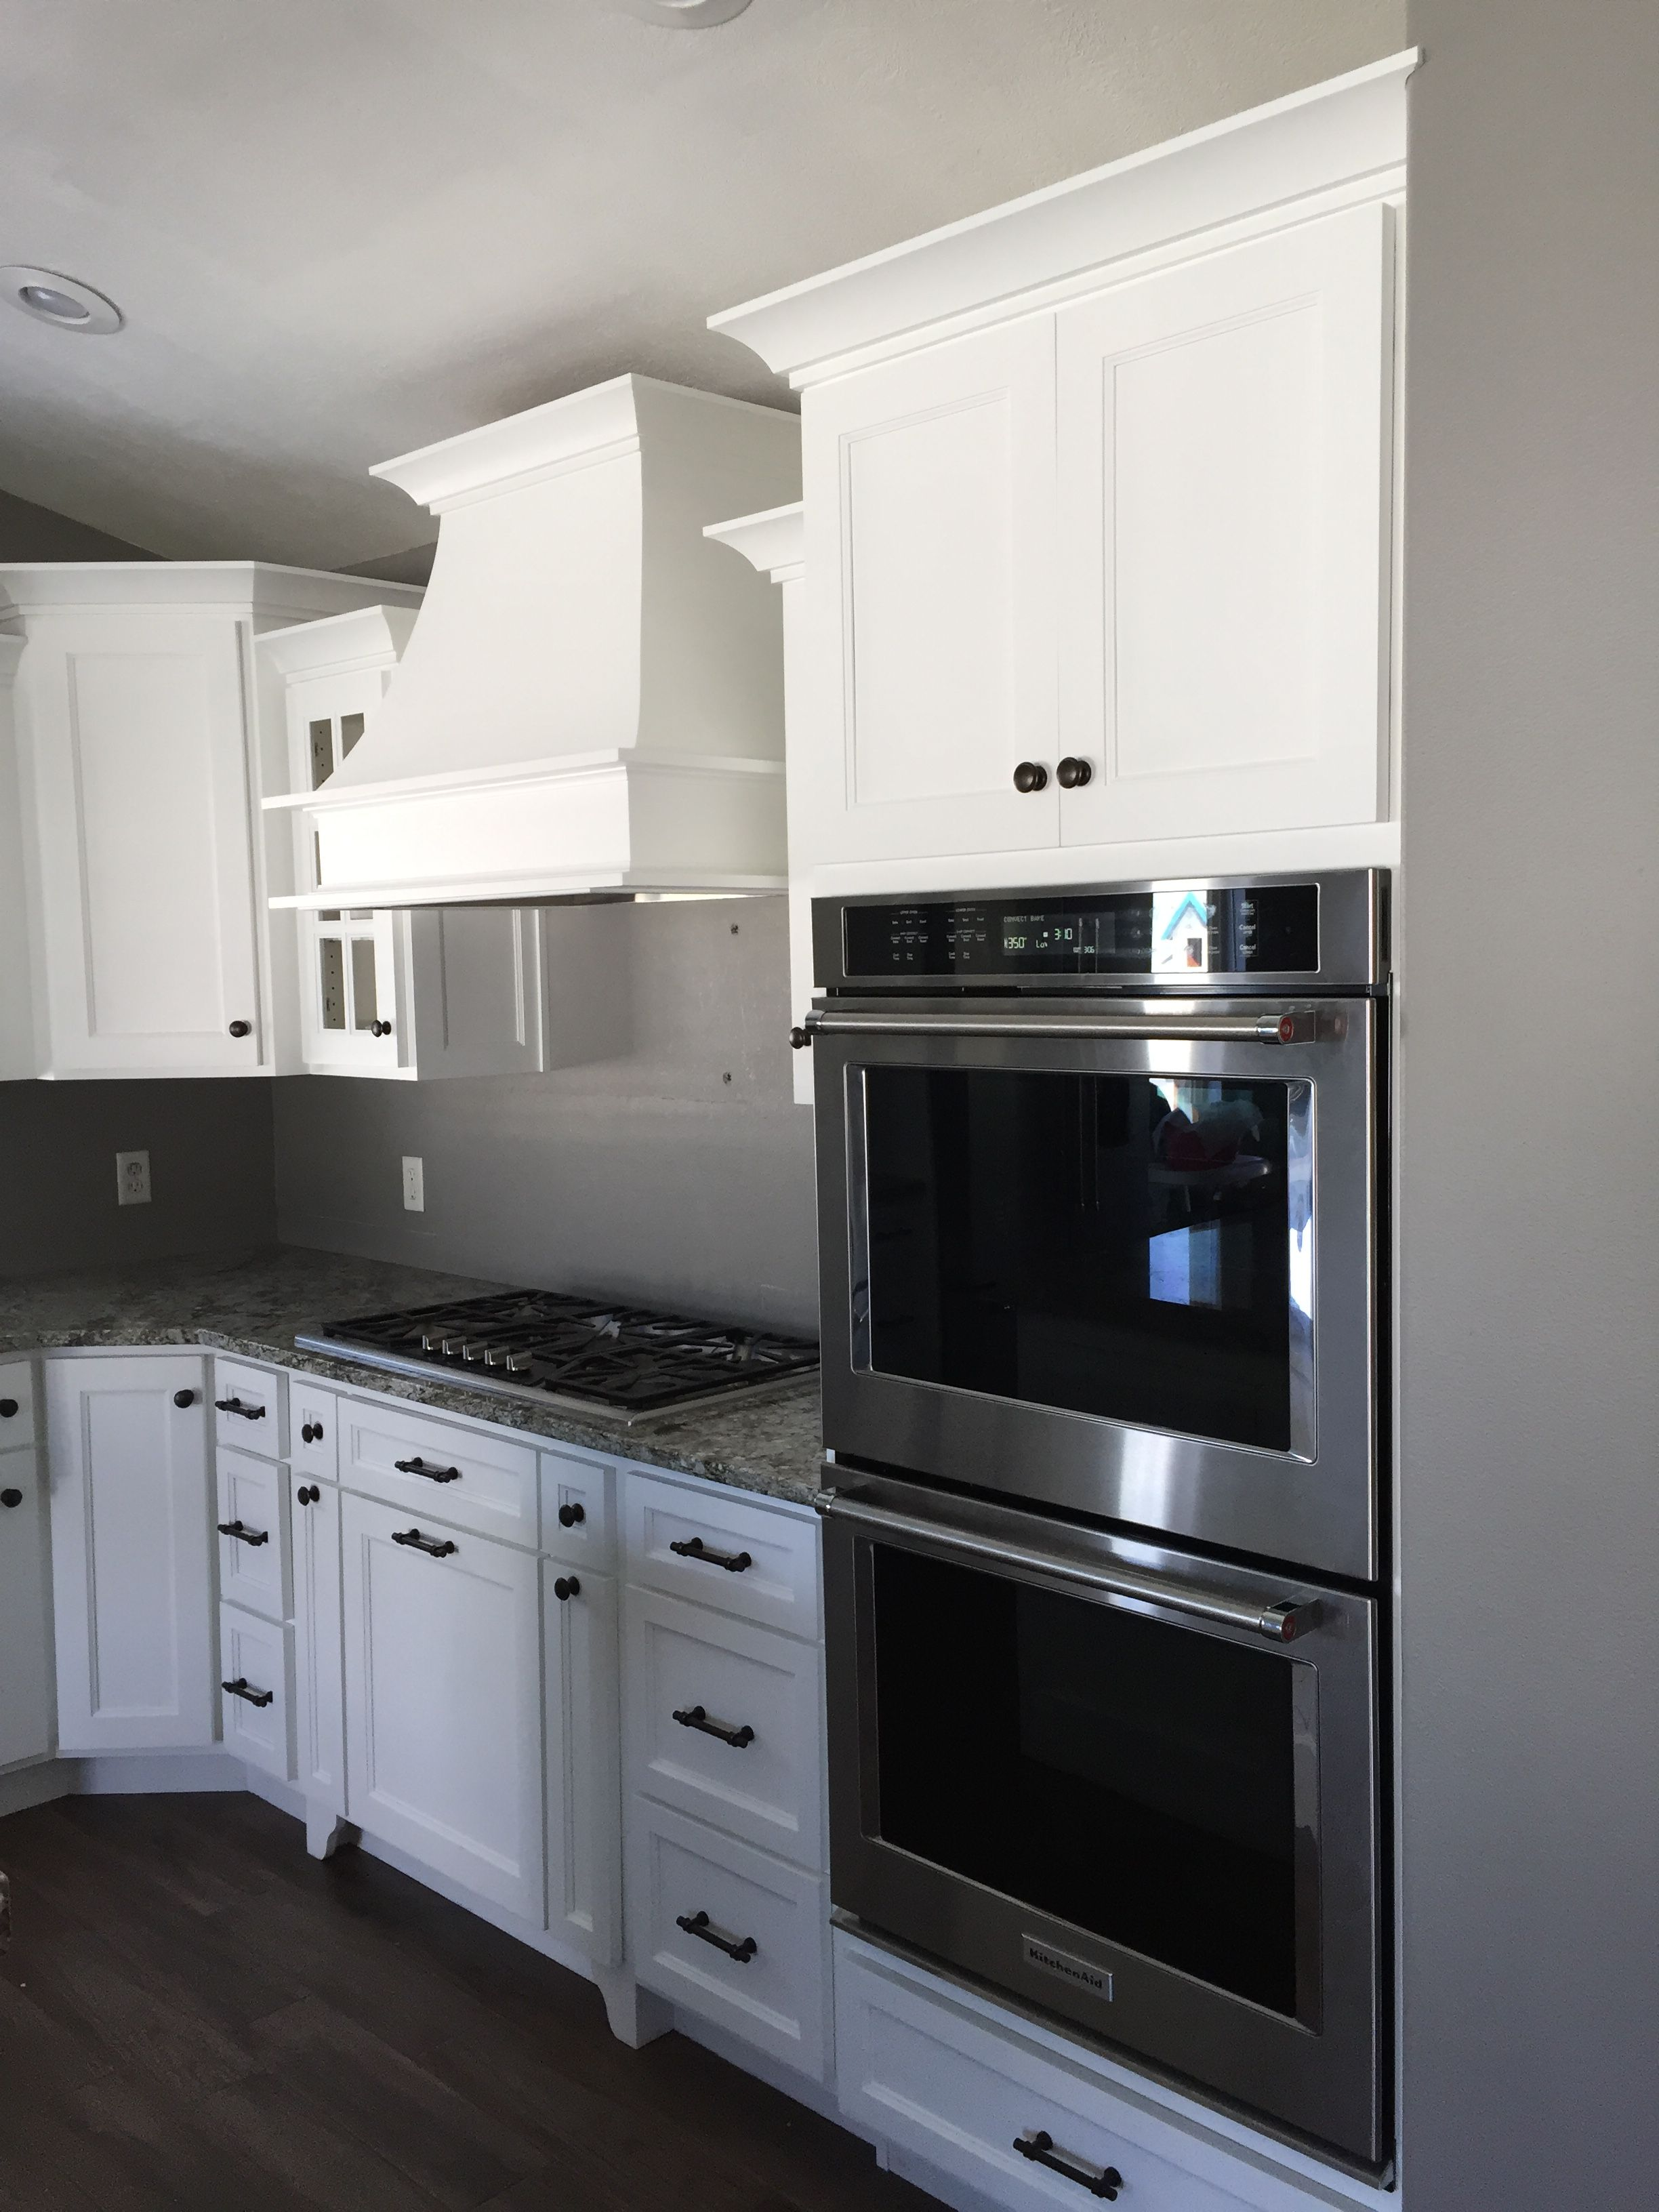 Kitchen Cabinets Castlefield Toronto White Kitchen Cabinets With Double Oven, Gas Cooktop, And